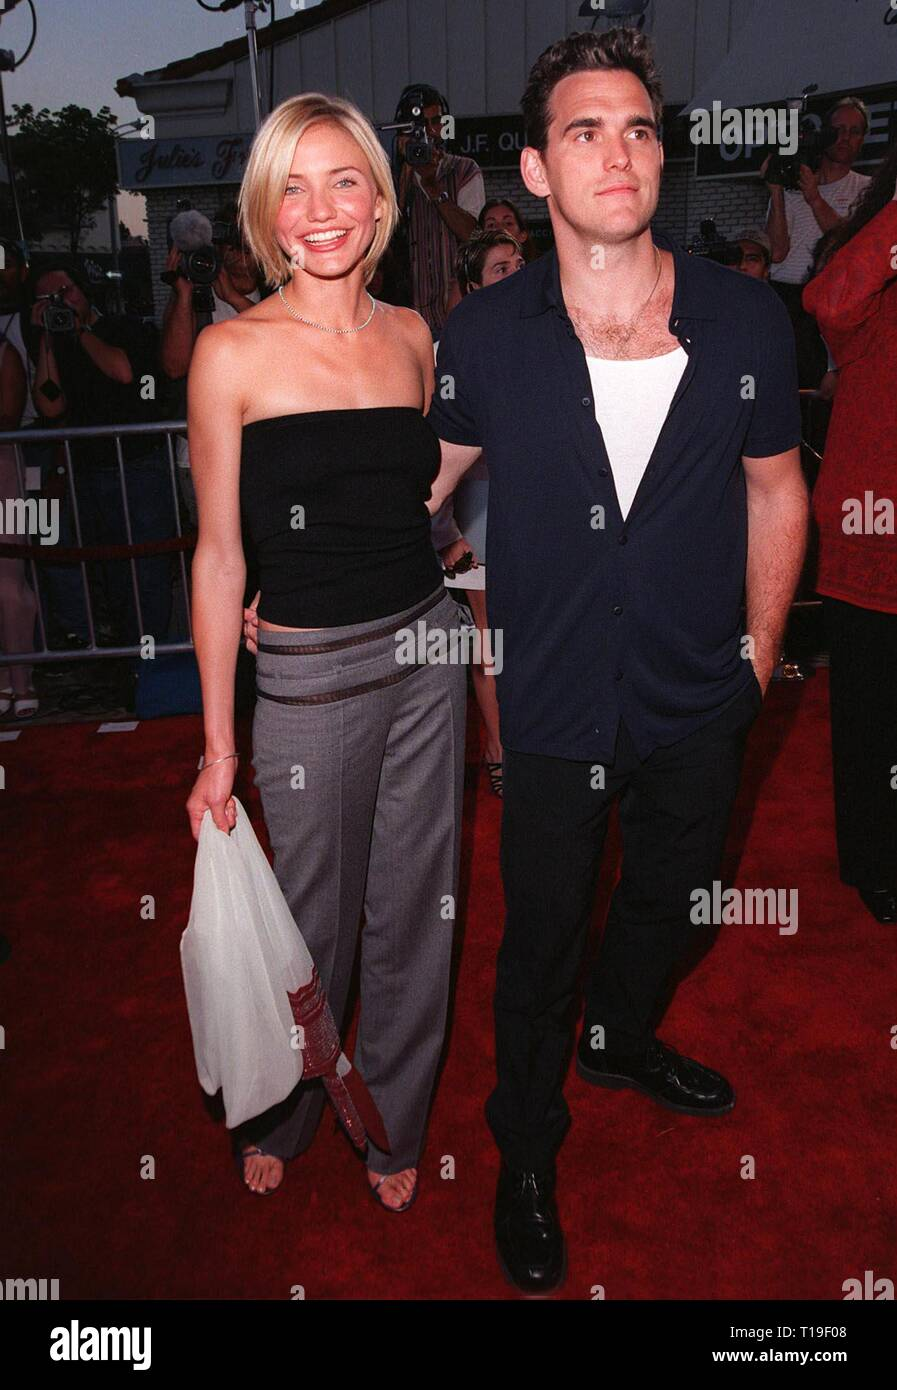 LOS ANGELES, CA - July 9, 1998: Actress CAMERON DIAZ & boyfriend & co-star MATT DILLON at the world premiere, in Los Angeles, of their new movie 'There's Something About Mary.' - Stock Image